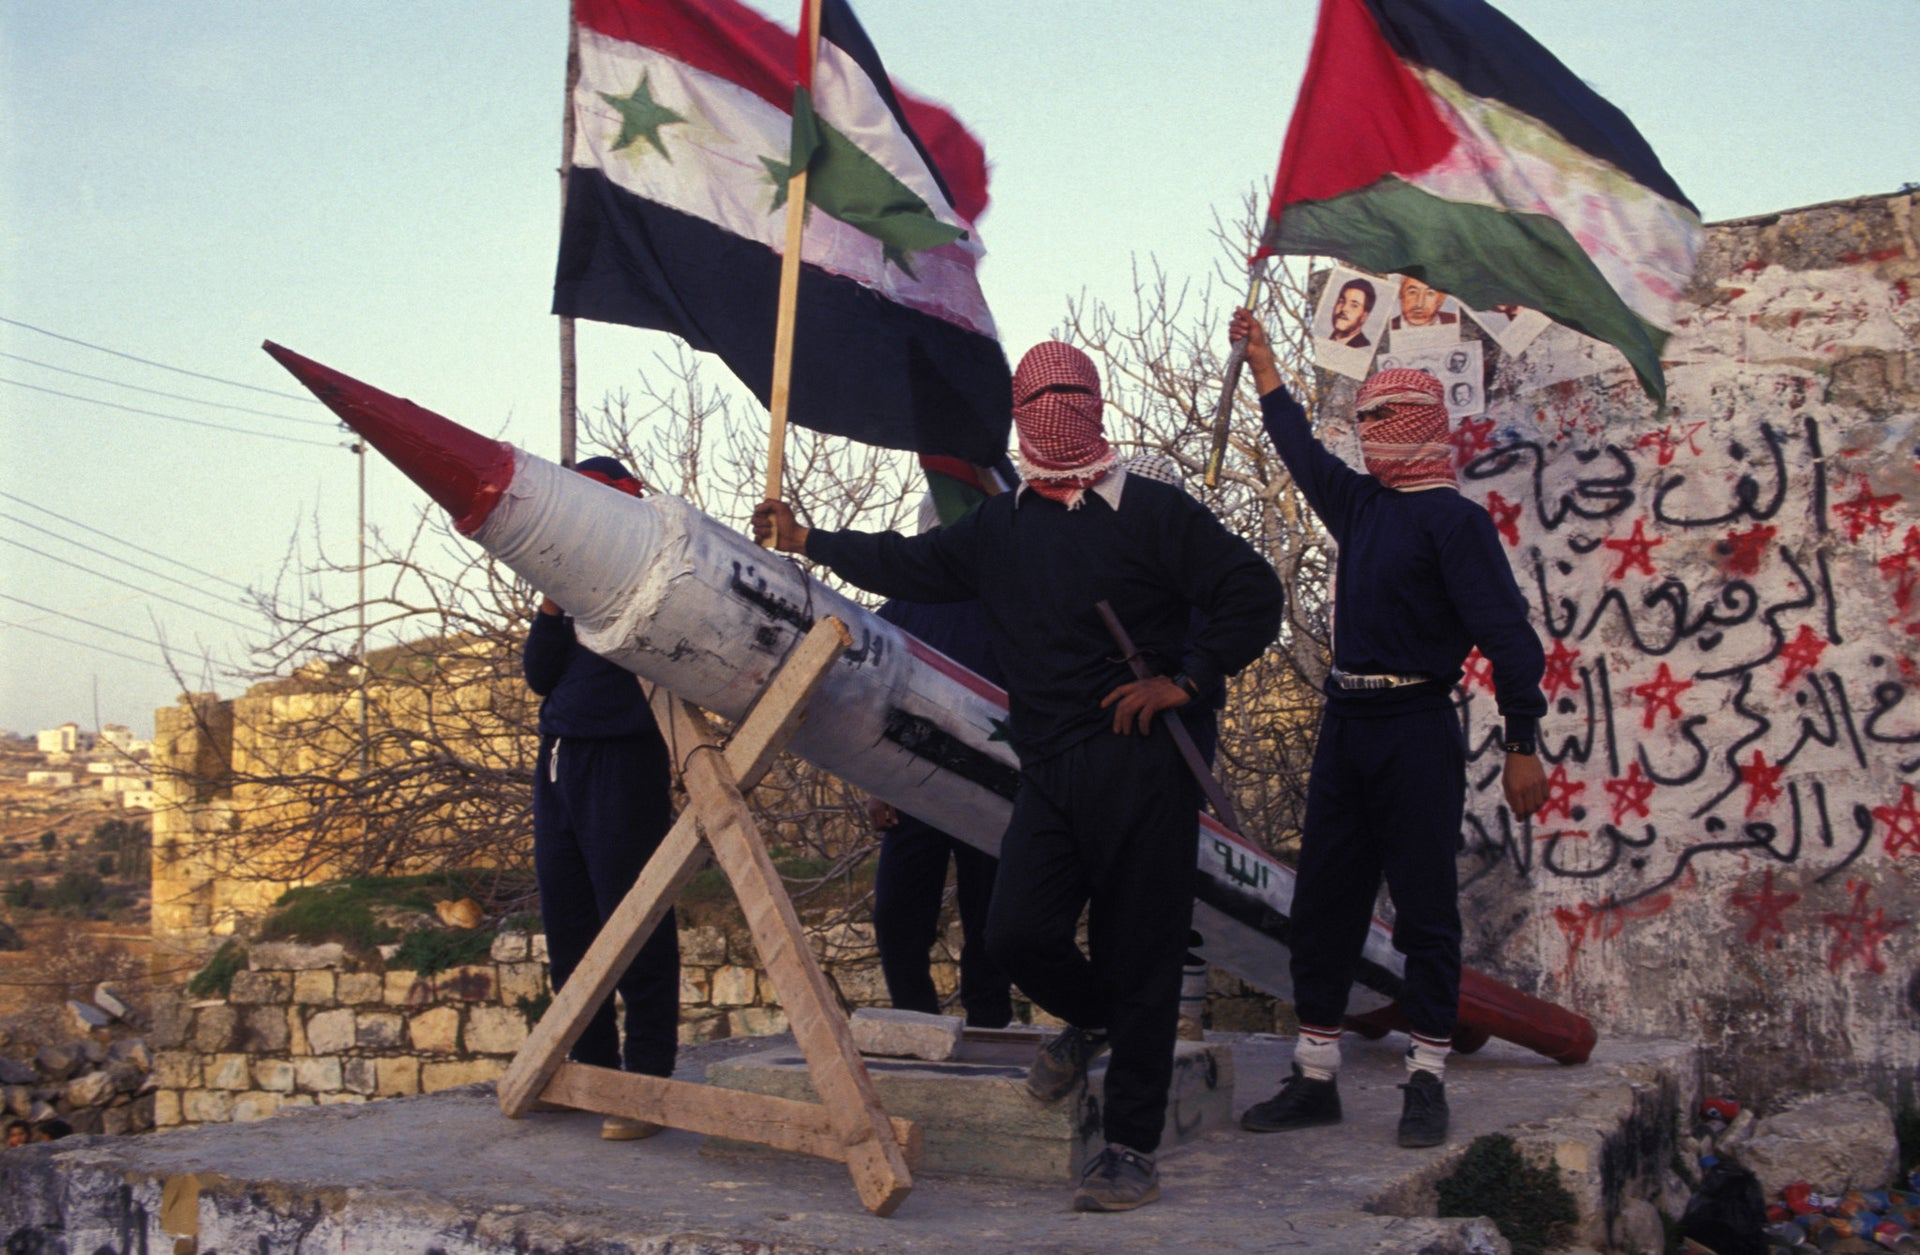 Palestinians express support for Saddam Hussein during the Gulf War, in the West Bank, 1991.